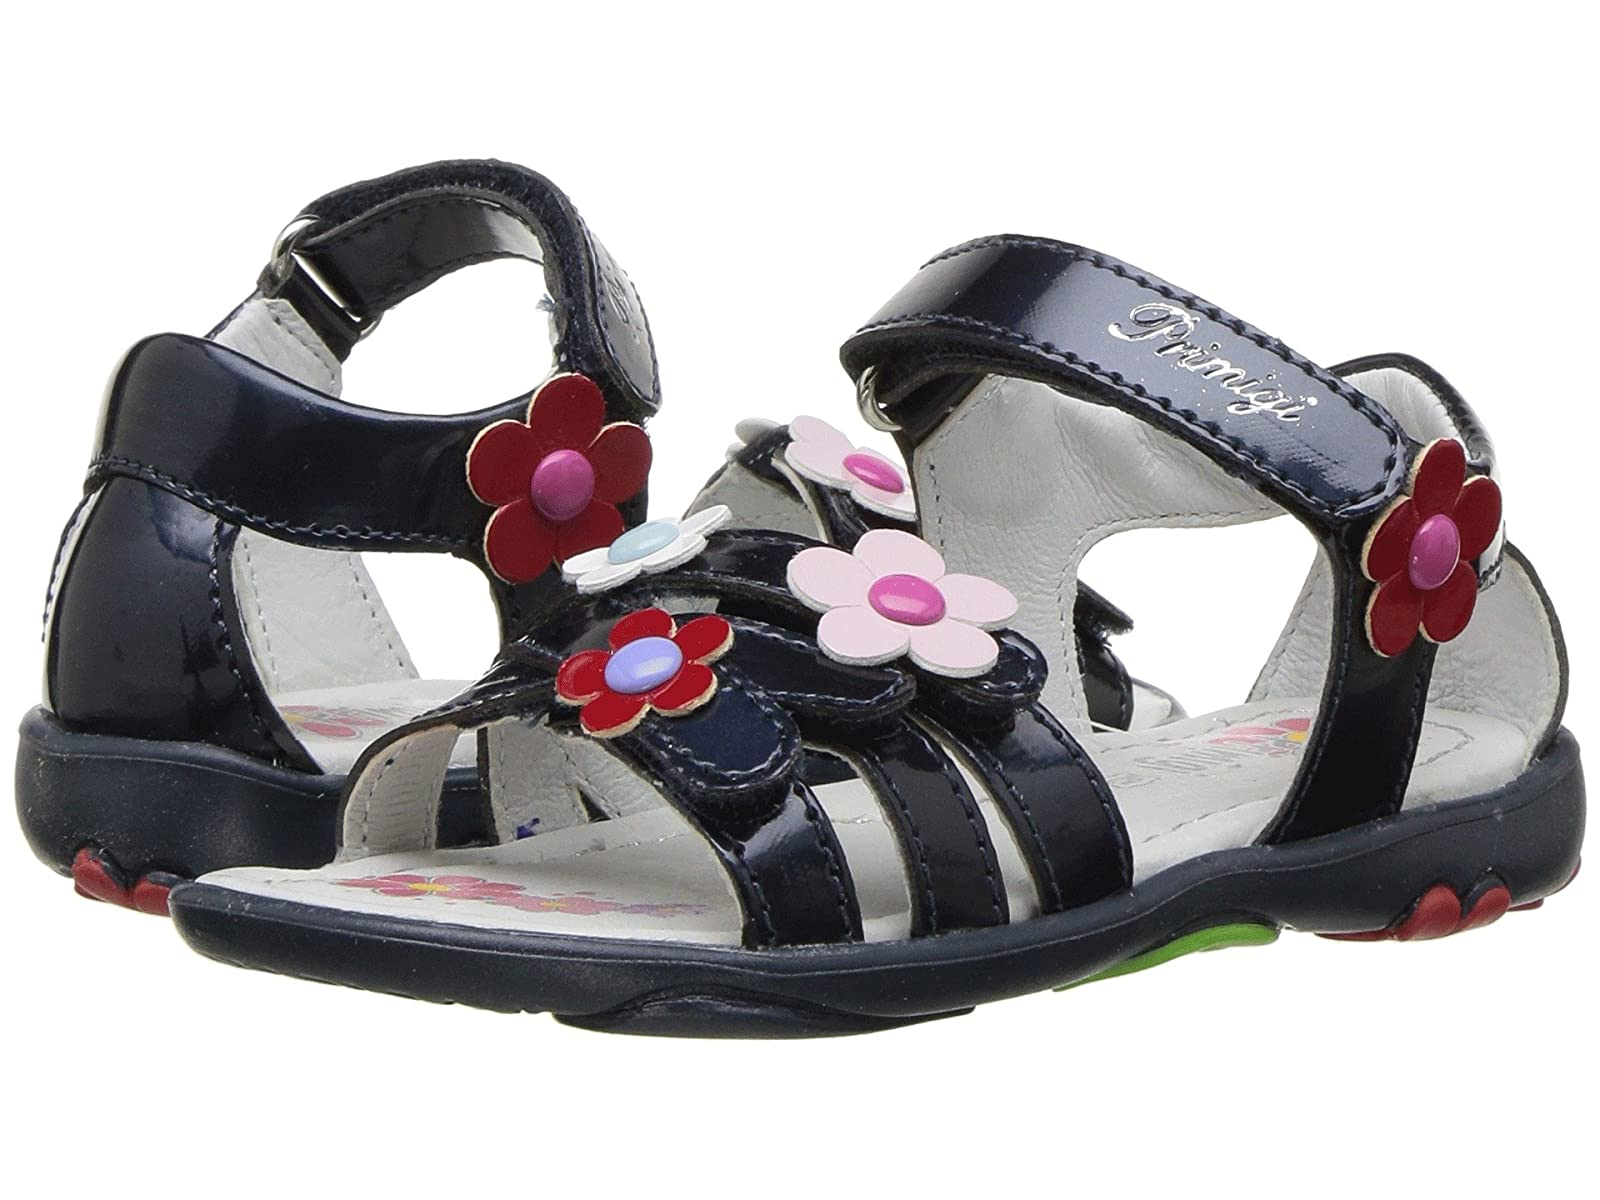 Primigi Kids PPR 14279 (Toddler/Little Kid)Atmospheric grades have affordable shoes